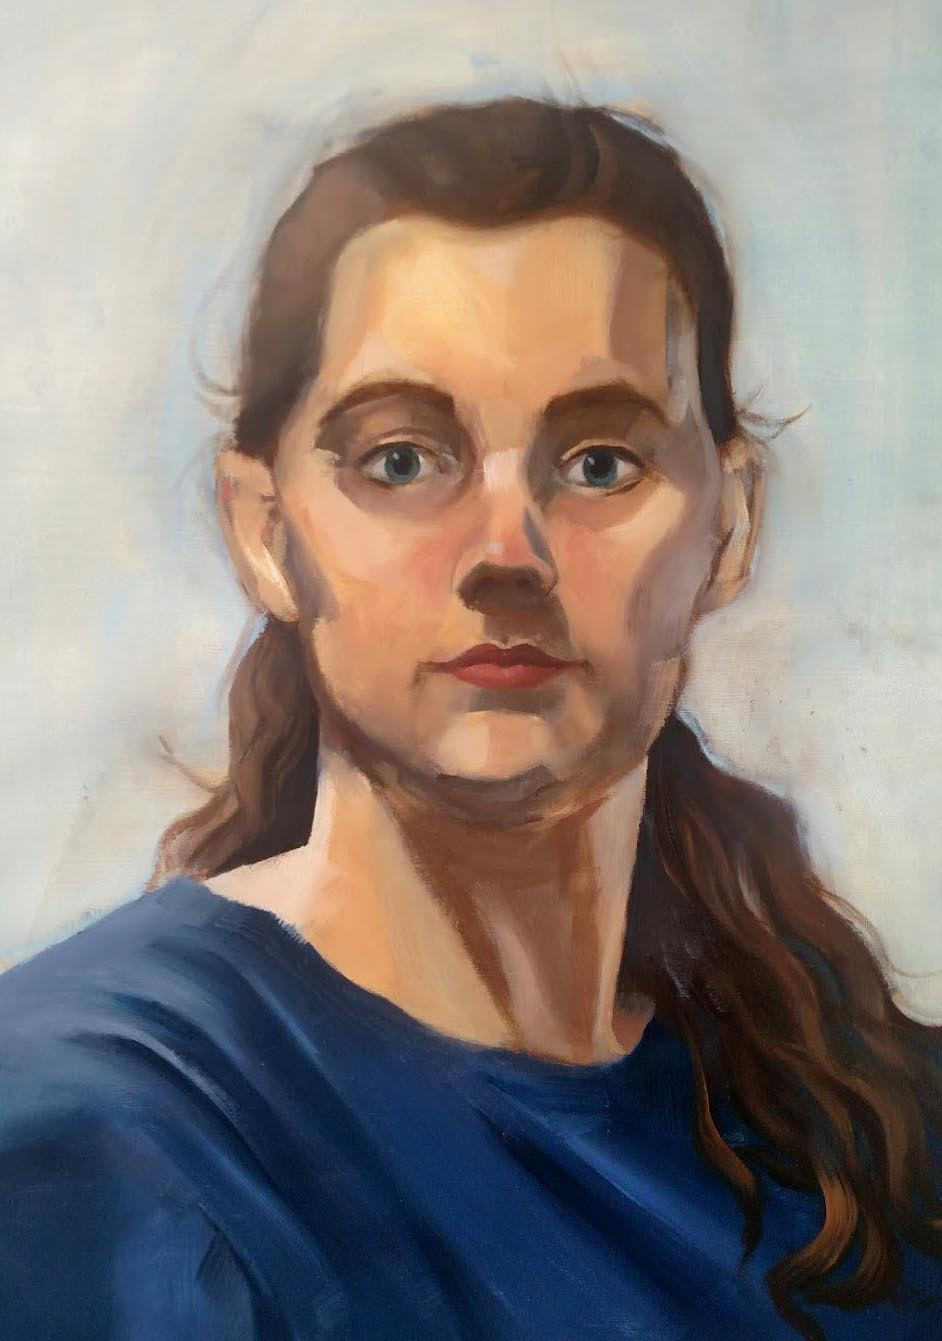 Introduction to Painting  Direct Observational Self-Portrait  Oil Paint on Gessoed Paper  2018